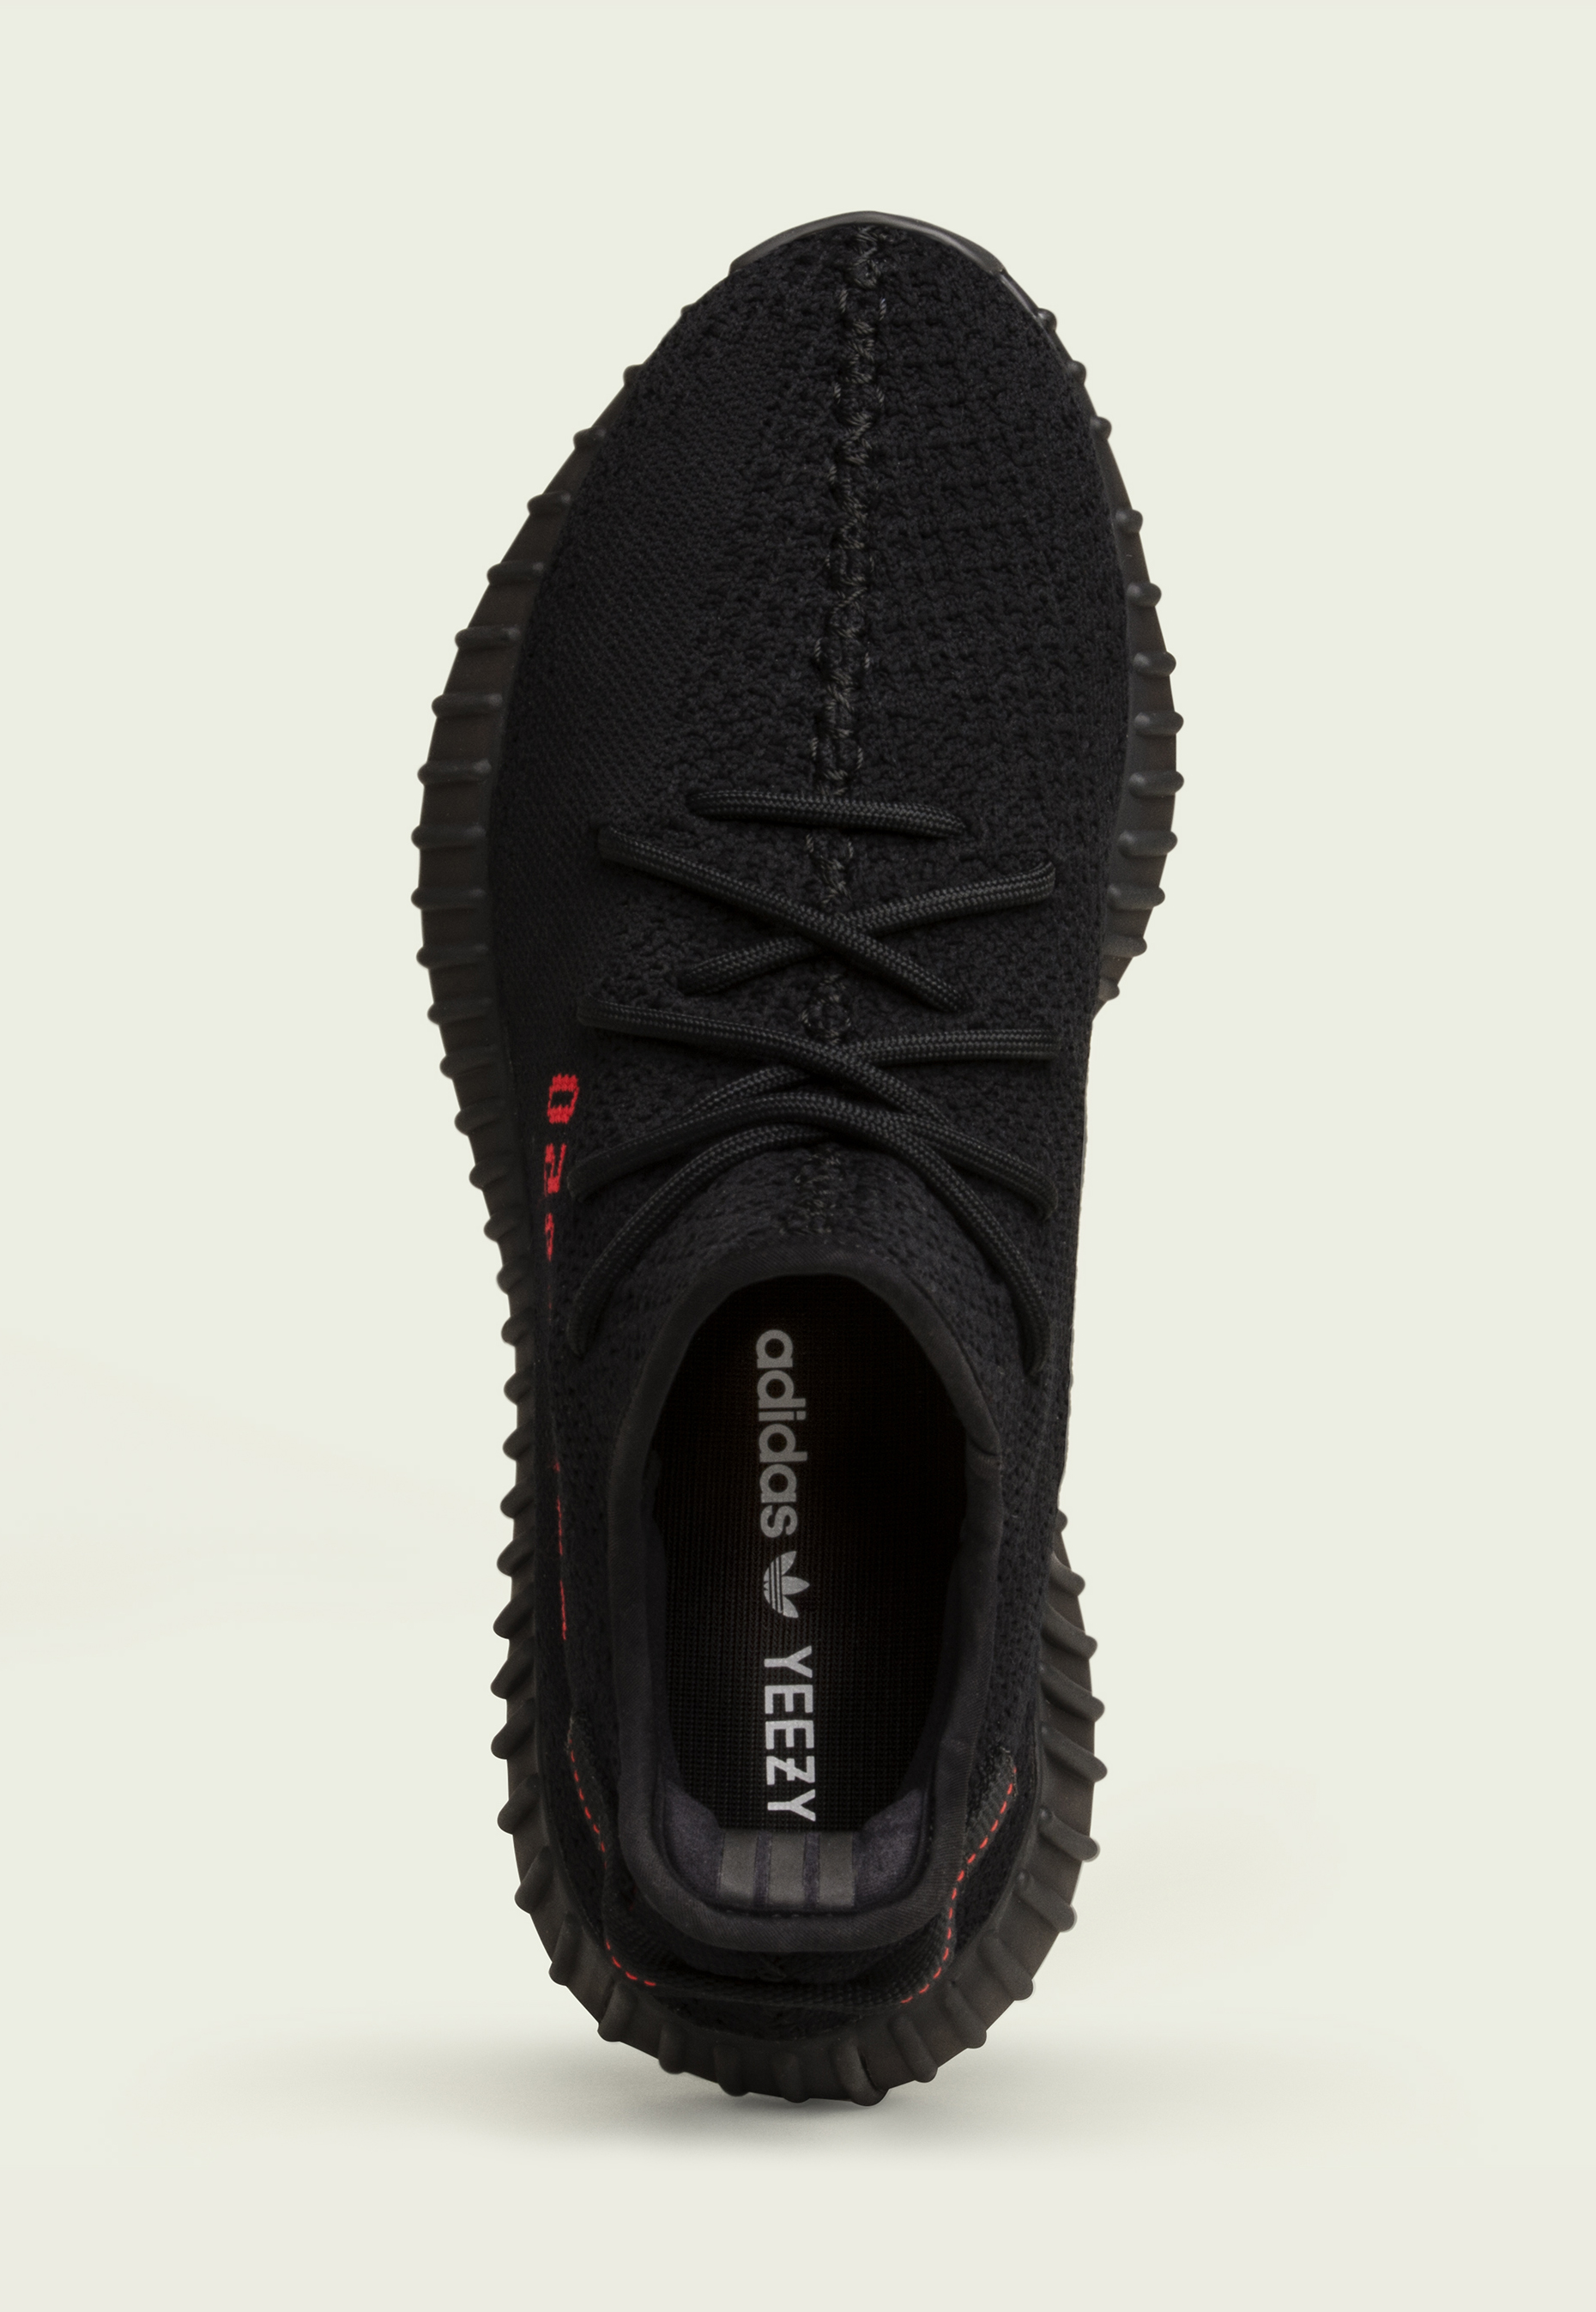 Cheap Adidas Yeezy Boost 350 Triple Black BB 5350 Basf V 4.0 Outlet